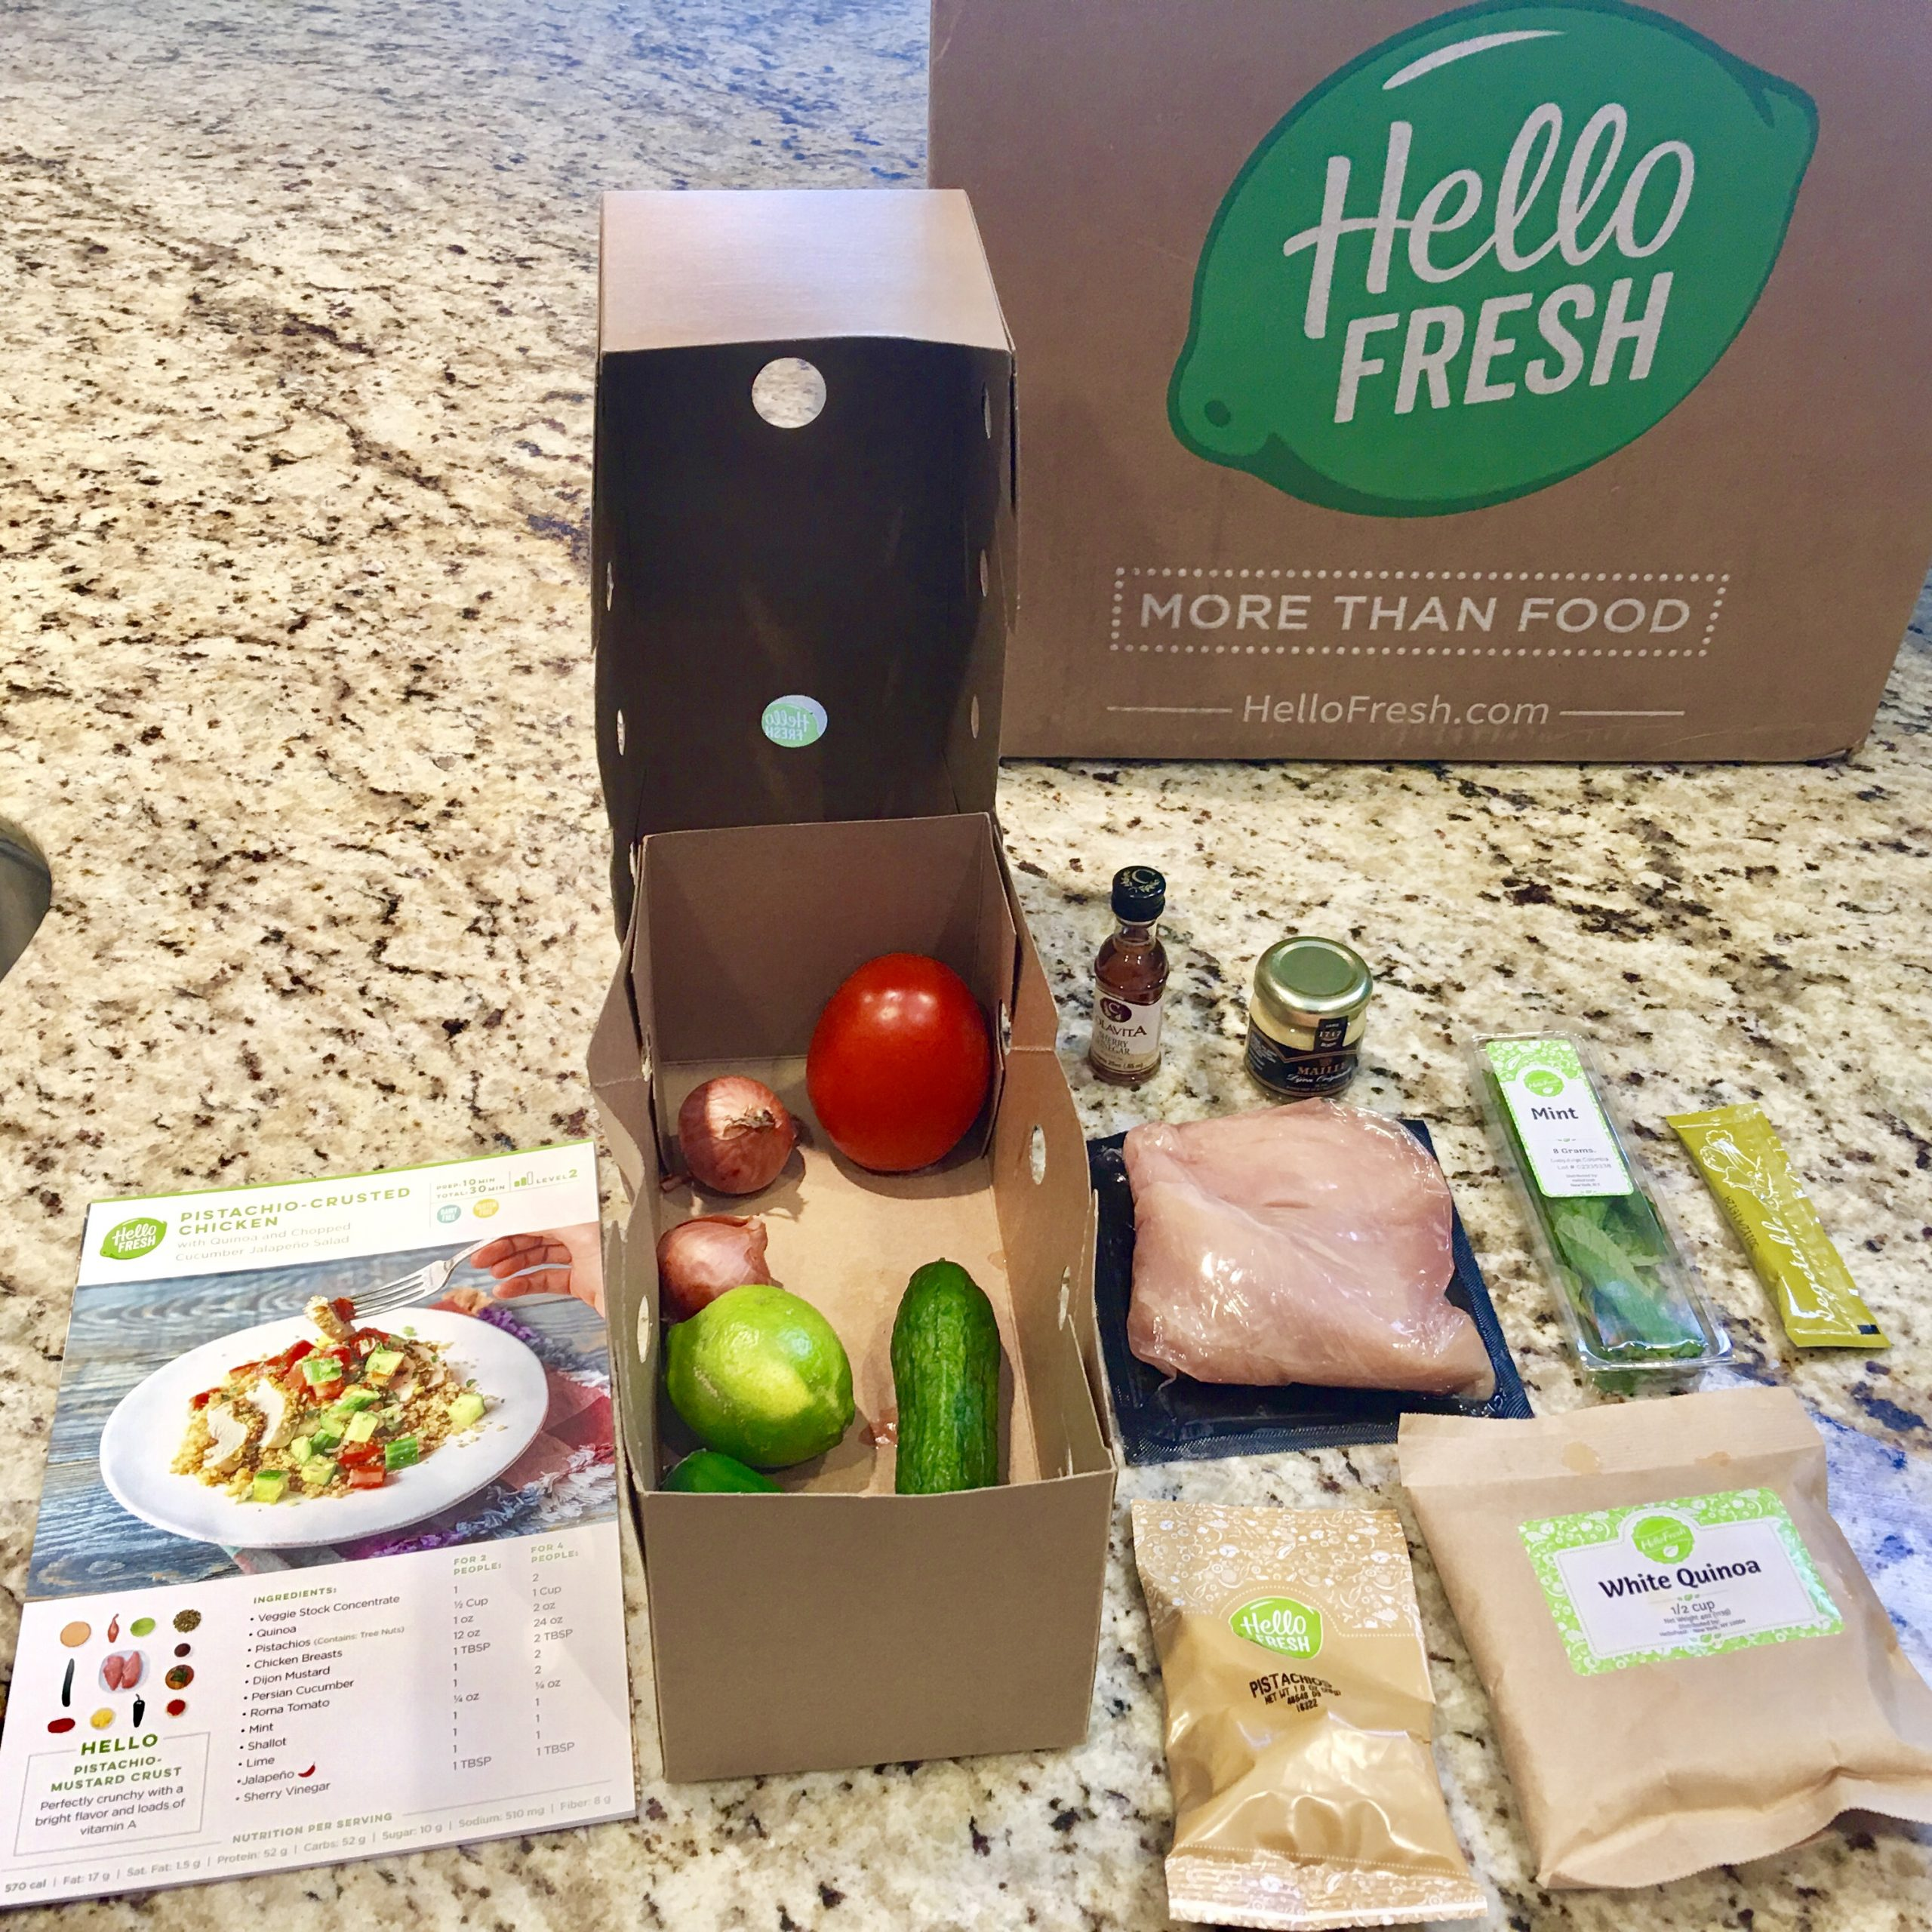 In The Sale Hellofresh